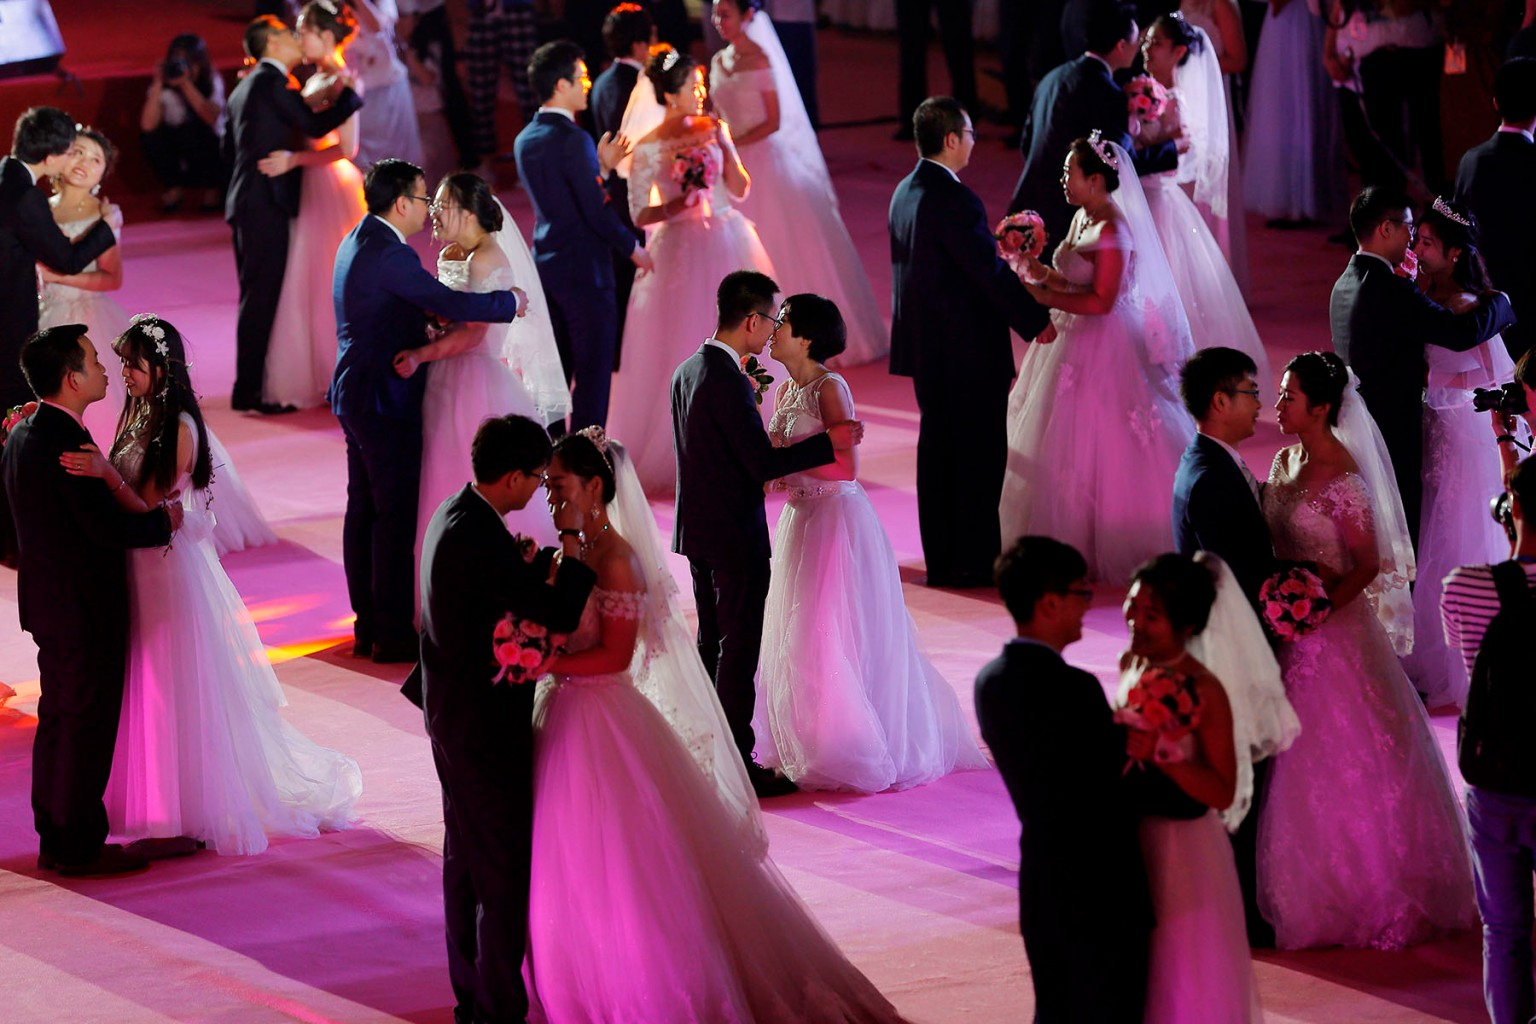 Couples kiss during a mass wedding ceremony on May 20 at Northeastern University in Shenyang in China's northeastern Liaoning province. AFP/Getty Images